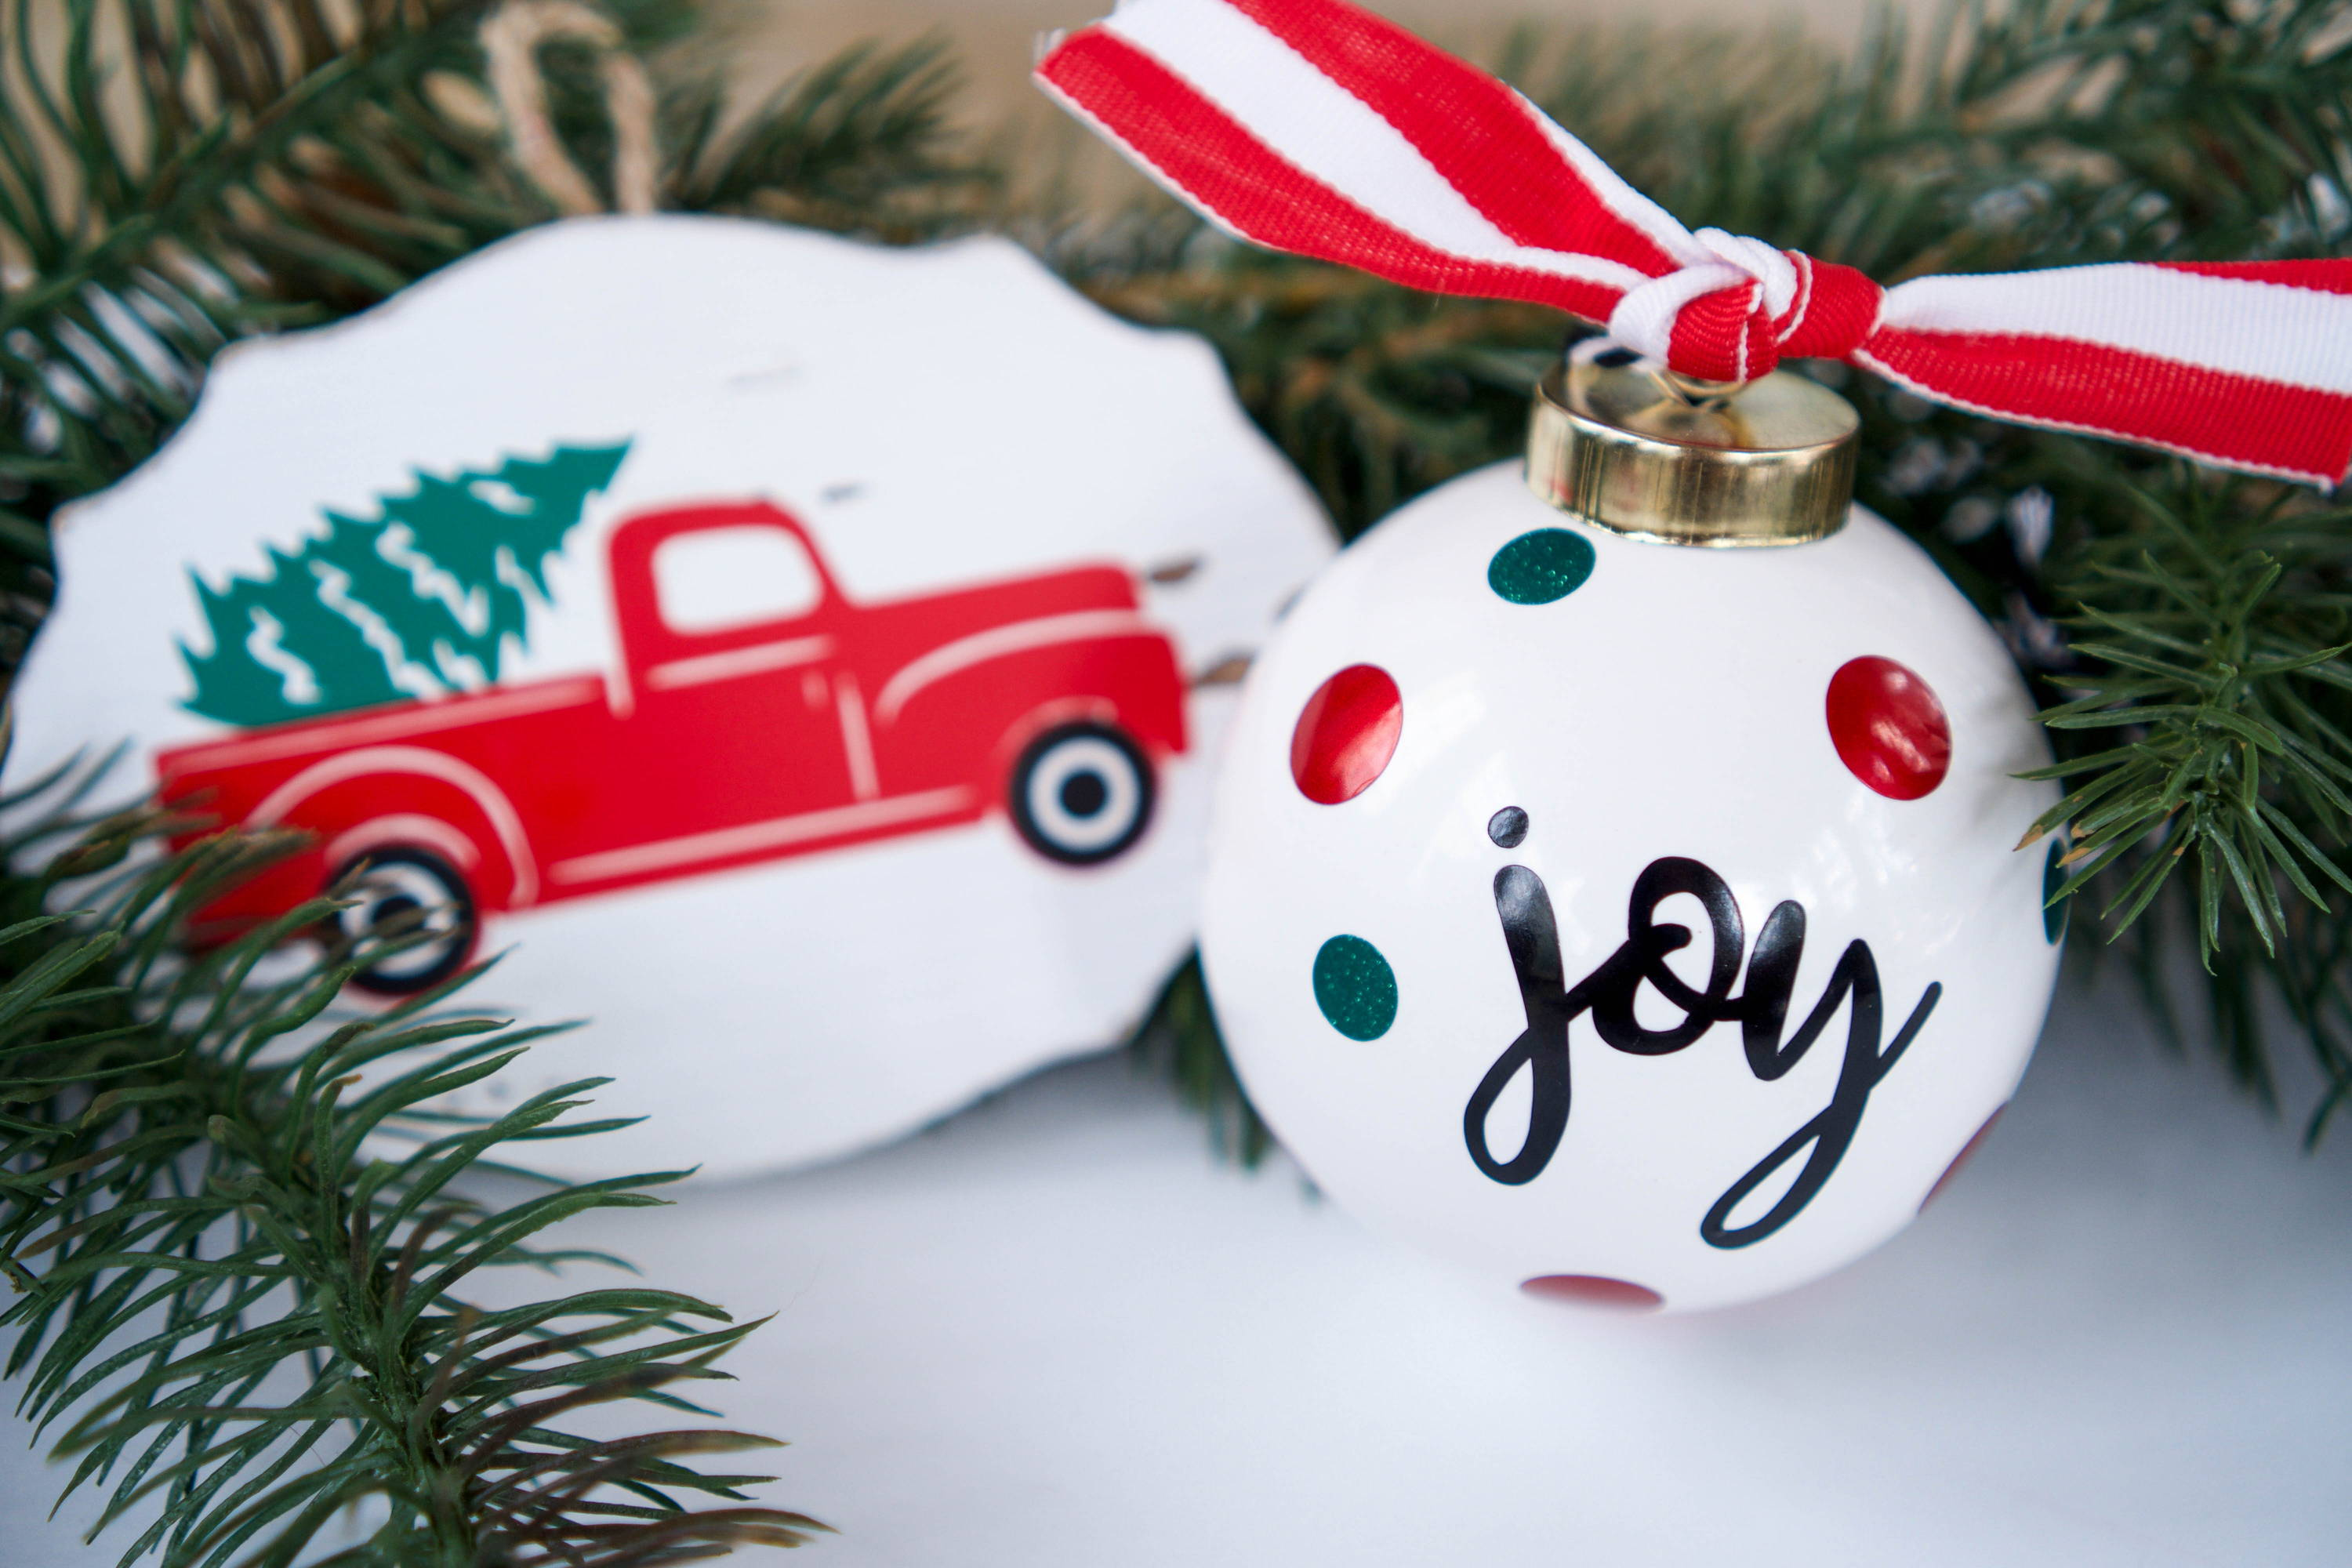 Diy Christmas Ornament Ideas Heat Transfer Vinyl On Wood And Adhesive Vinyl On Ceramic